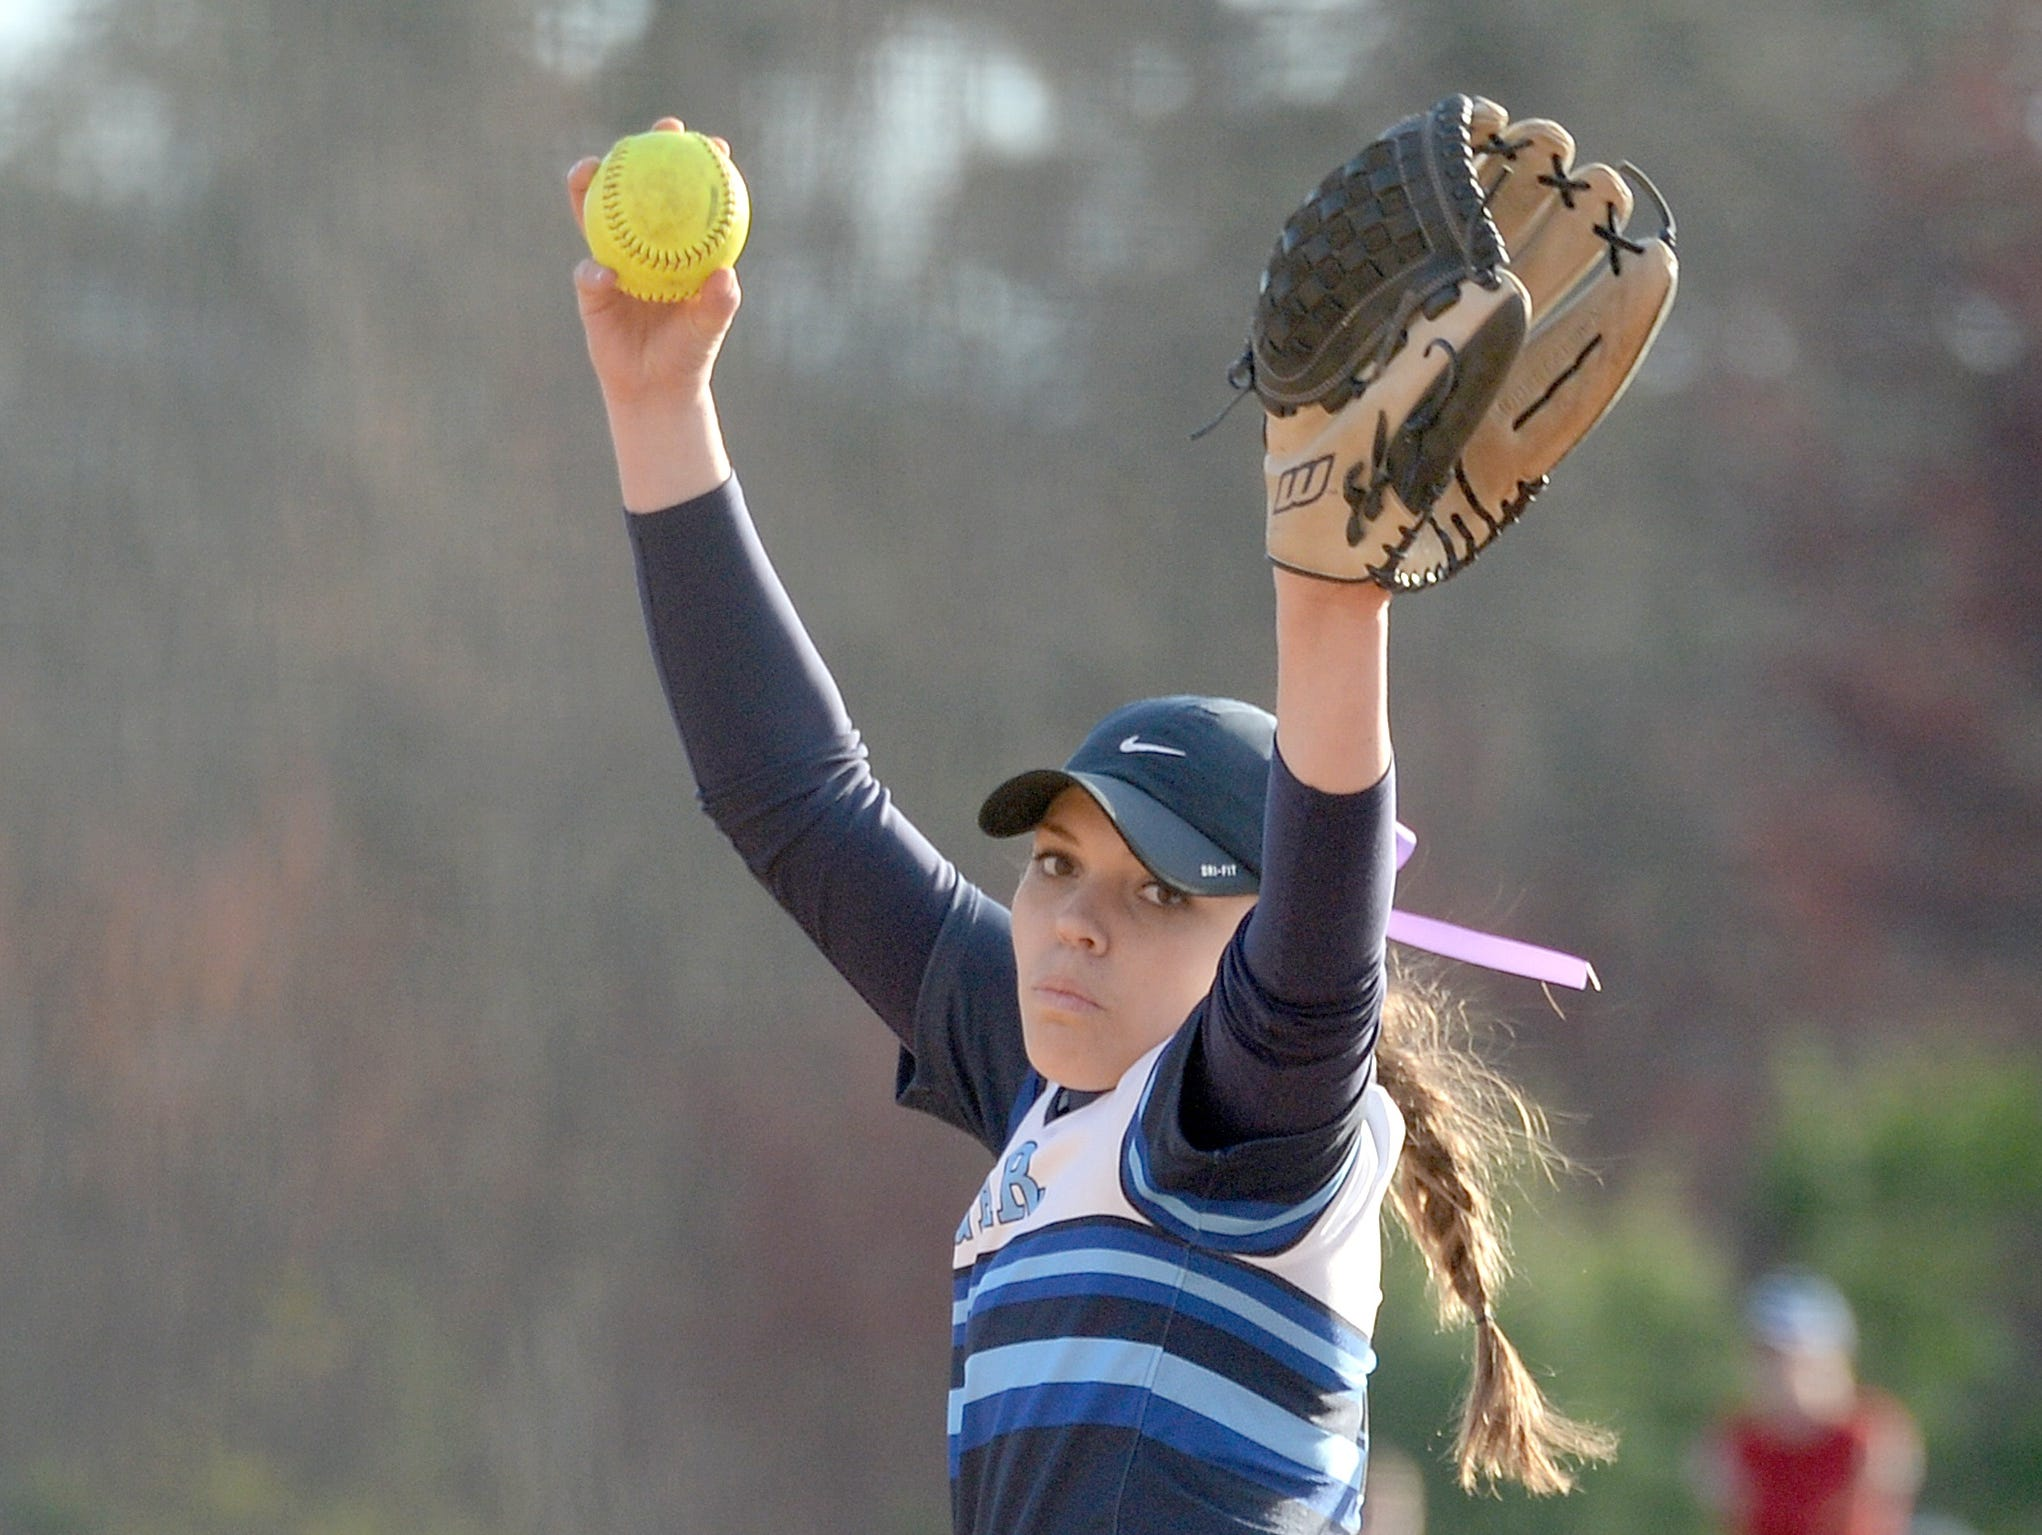 Courtney Pearson and Enka are home for Wednesday night's game against North Davidson.